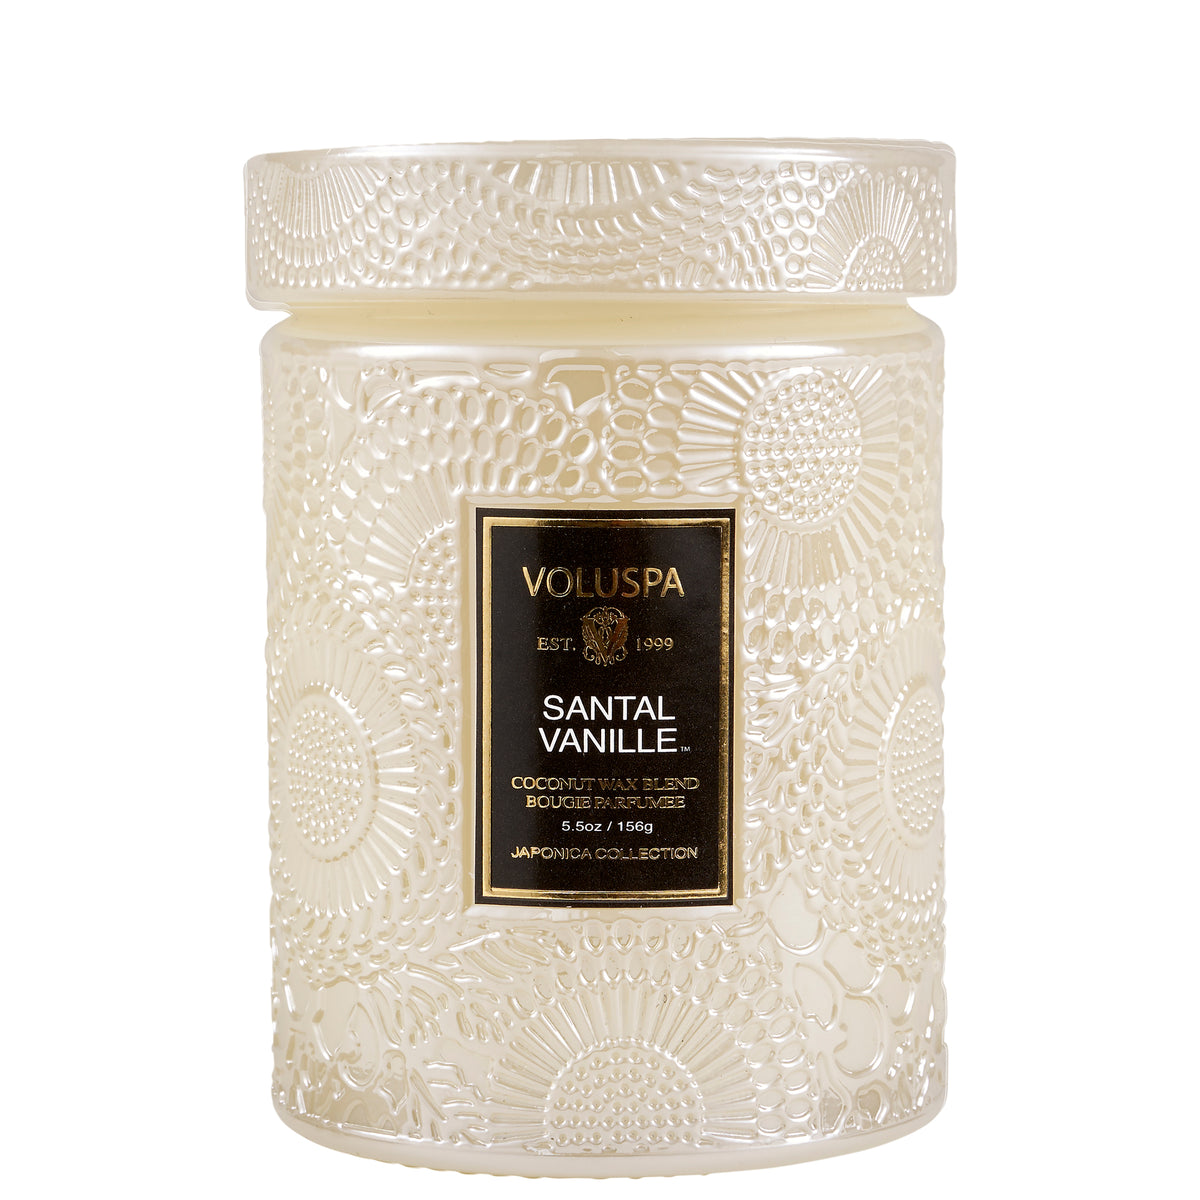 Santal Vanille - Small Jar Candle - 1